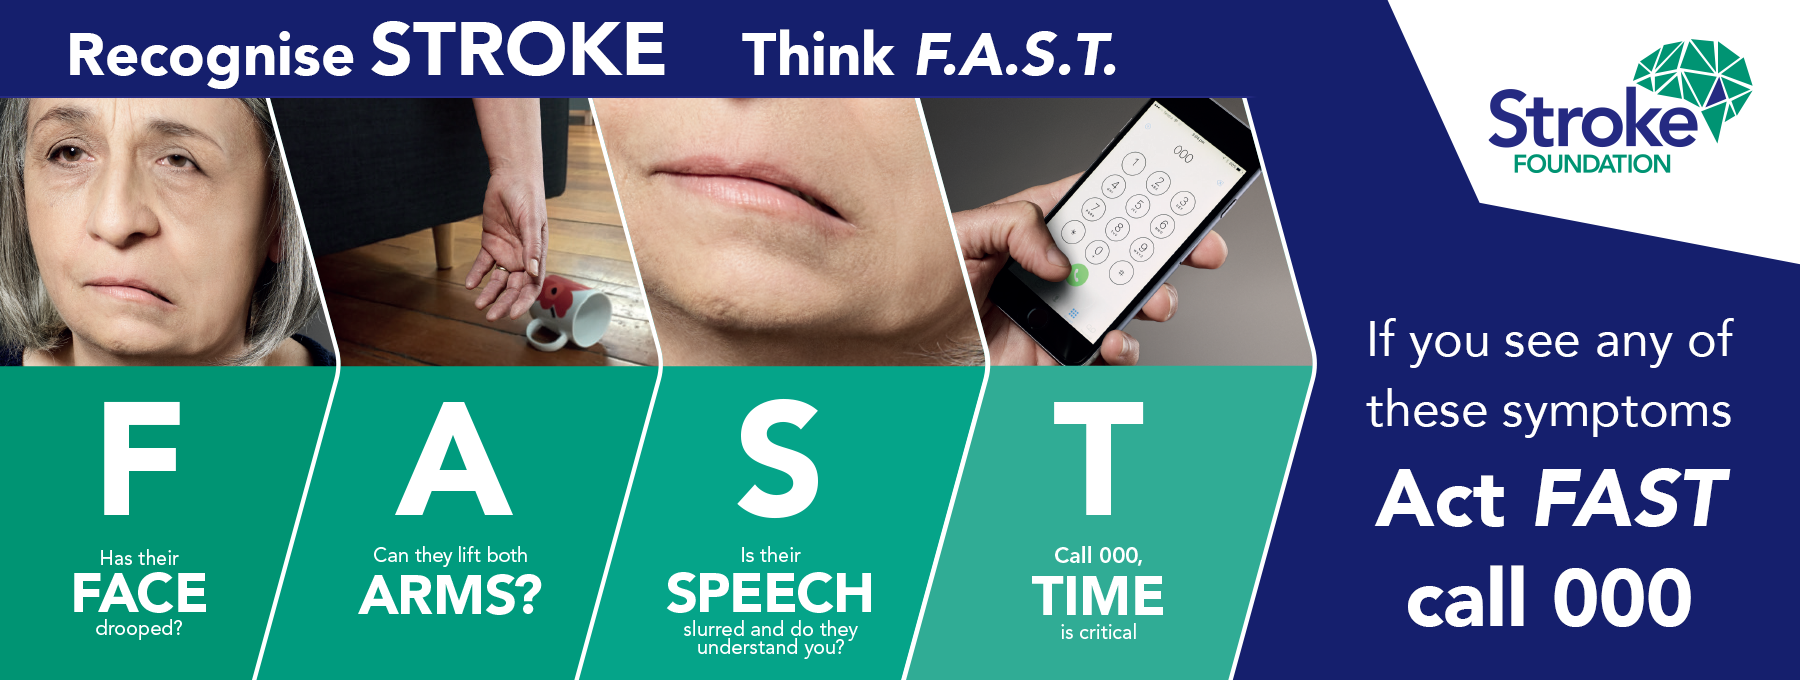 public awareness of stroke risk factors and warning signs Good mean knowledge score of causes, symptoms, warning signs and risk   public awareness of warning symptoms, risk factors, and treatment of stroke in.